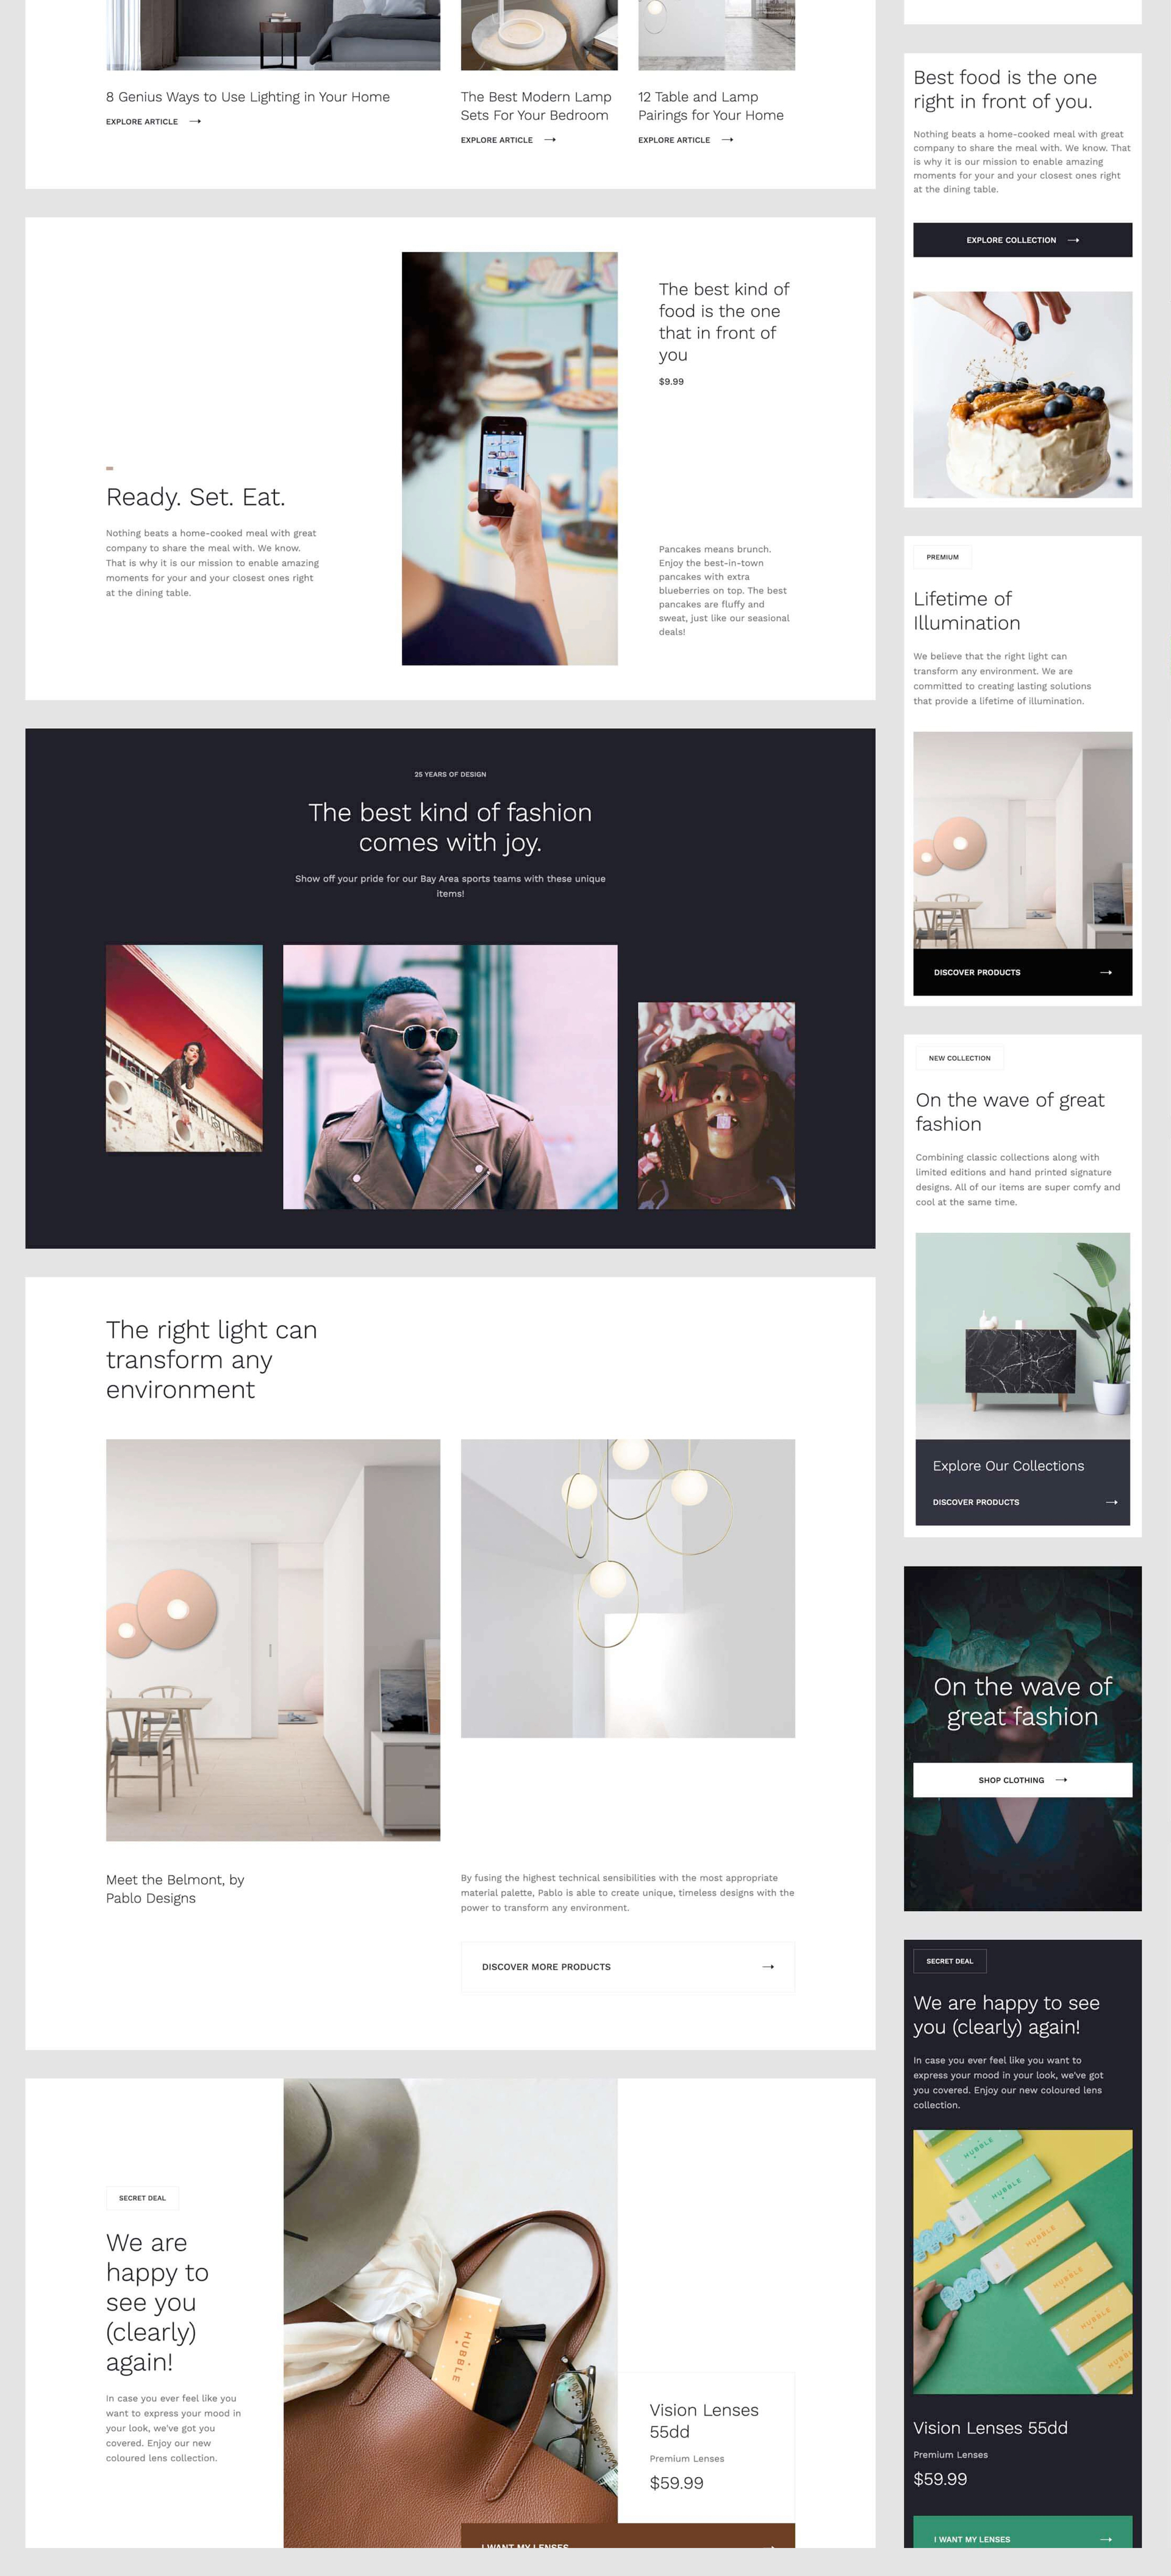 Prospero - Ecommerce UI Kit for Webflow - A clean, modular — and free — UI kit for ecommerce and beyond. Get all the pieces you need to create a polished online store in Webflow, including 2 unique, ready-to-launch templates. The kit includes 85 sections and 10 layouts showcasing large photos, sleek typography, and plenty of white space to keep the attention on your products and brand.